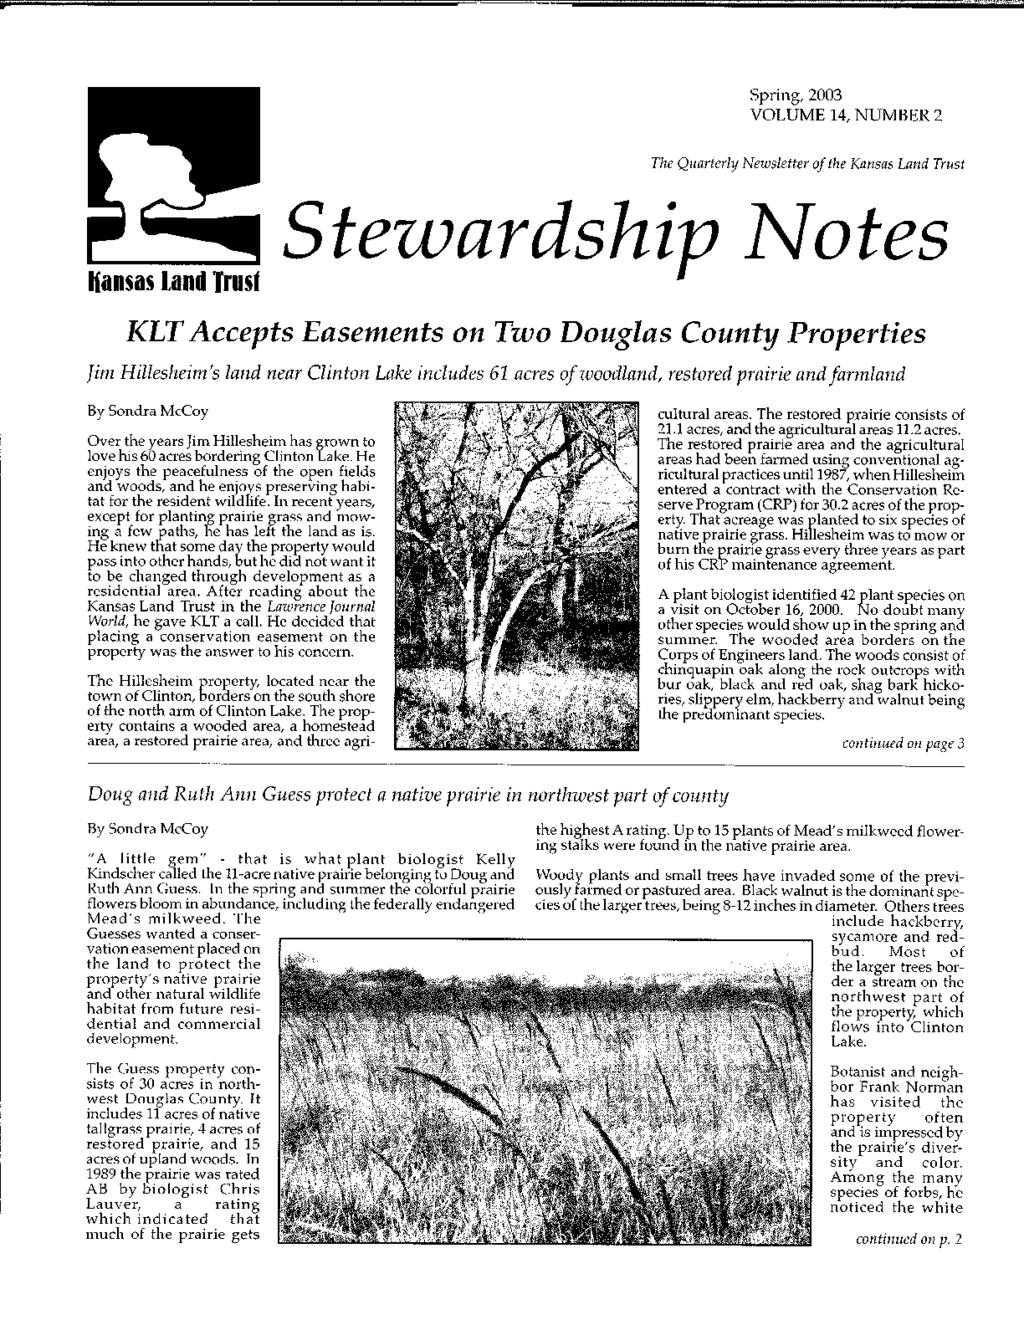 Spring, 2003 VOLUME 14, NUMBER 2 The Quarterly Newsletter of the Kansas Land Trust I{ansas land Trust tewardship ates KLT Accepts Easements on Two Douglas County Properties Jim Hillesheim's land near